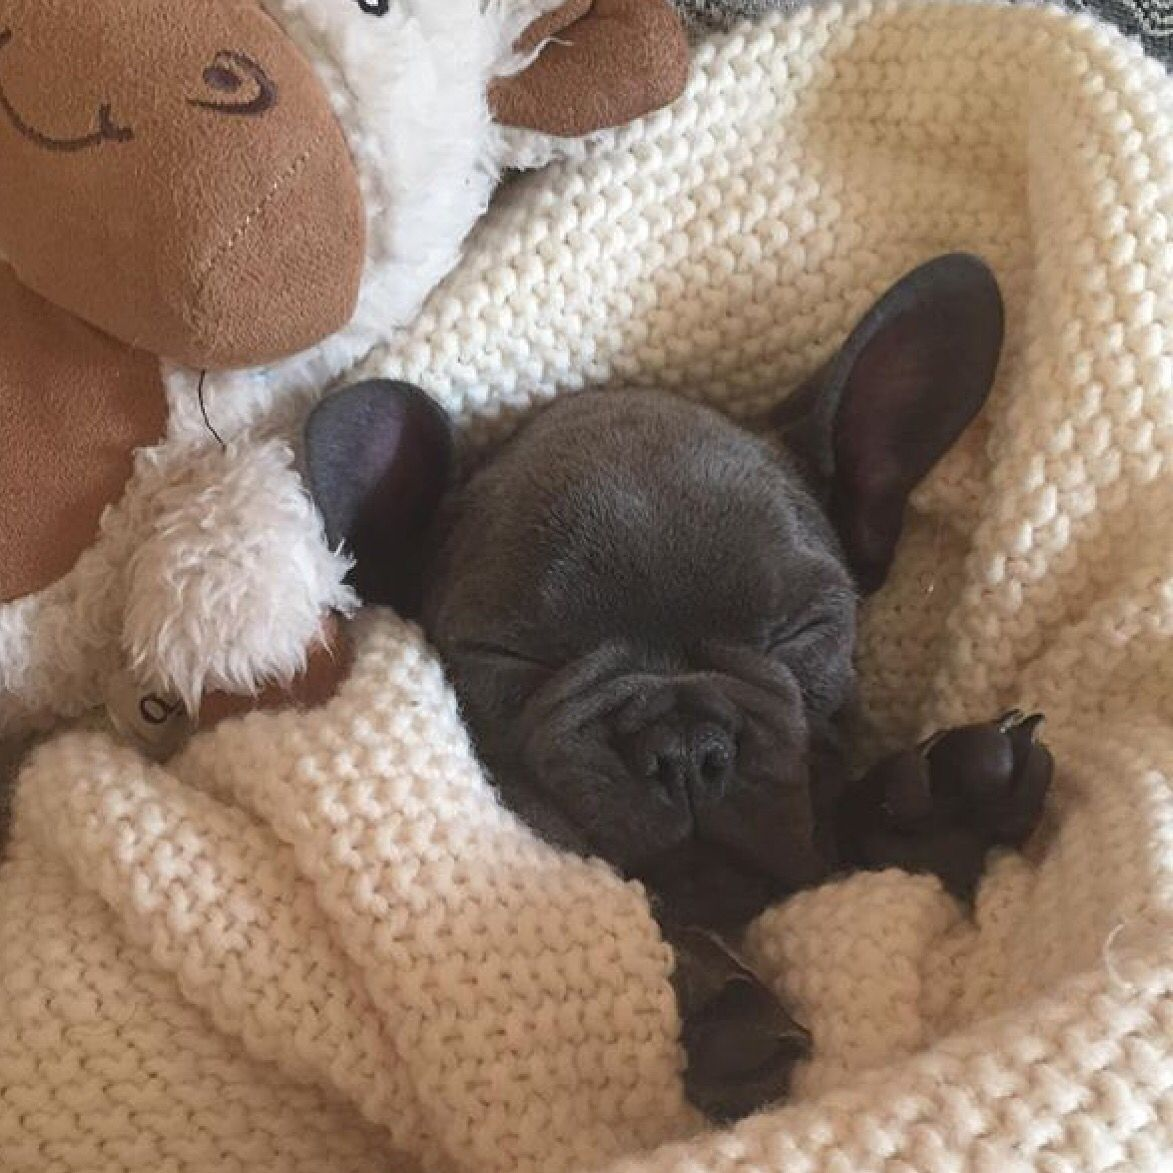 French Bulldog Playful And Smart Baby French Bulldog French Bulldog Puppies Blue French Bulldog Puppies